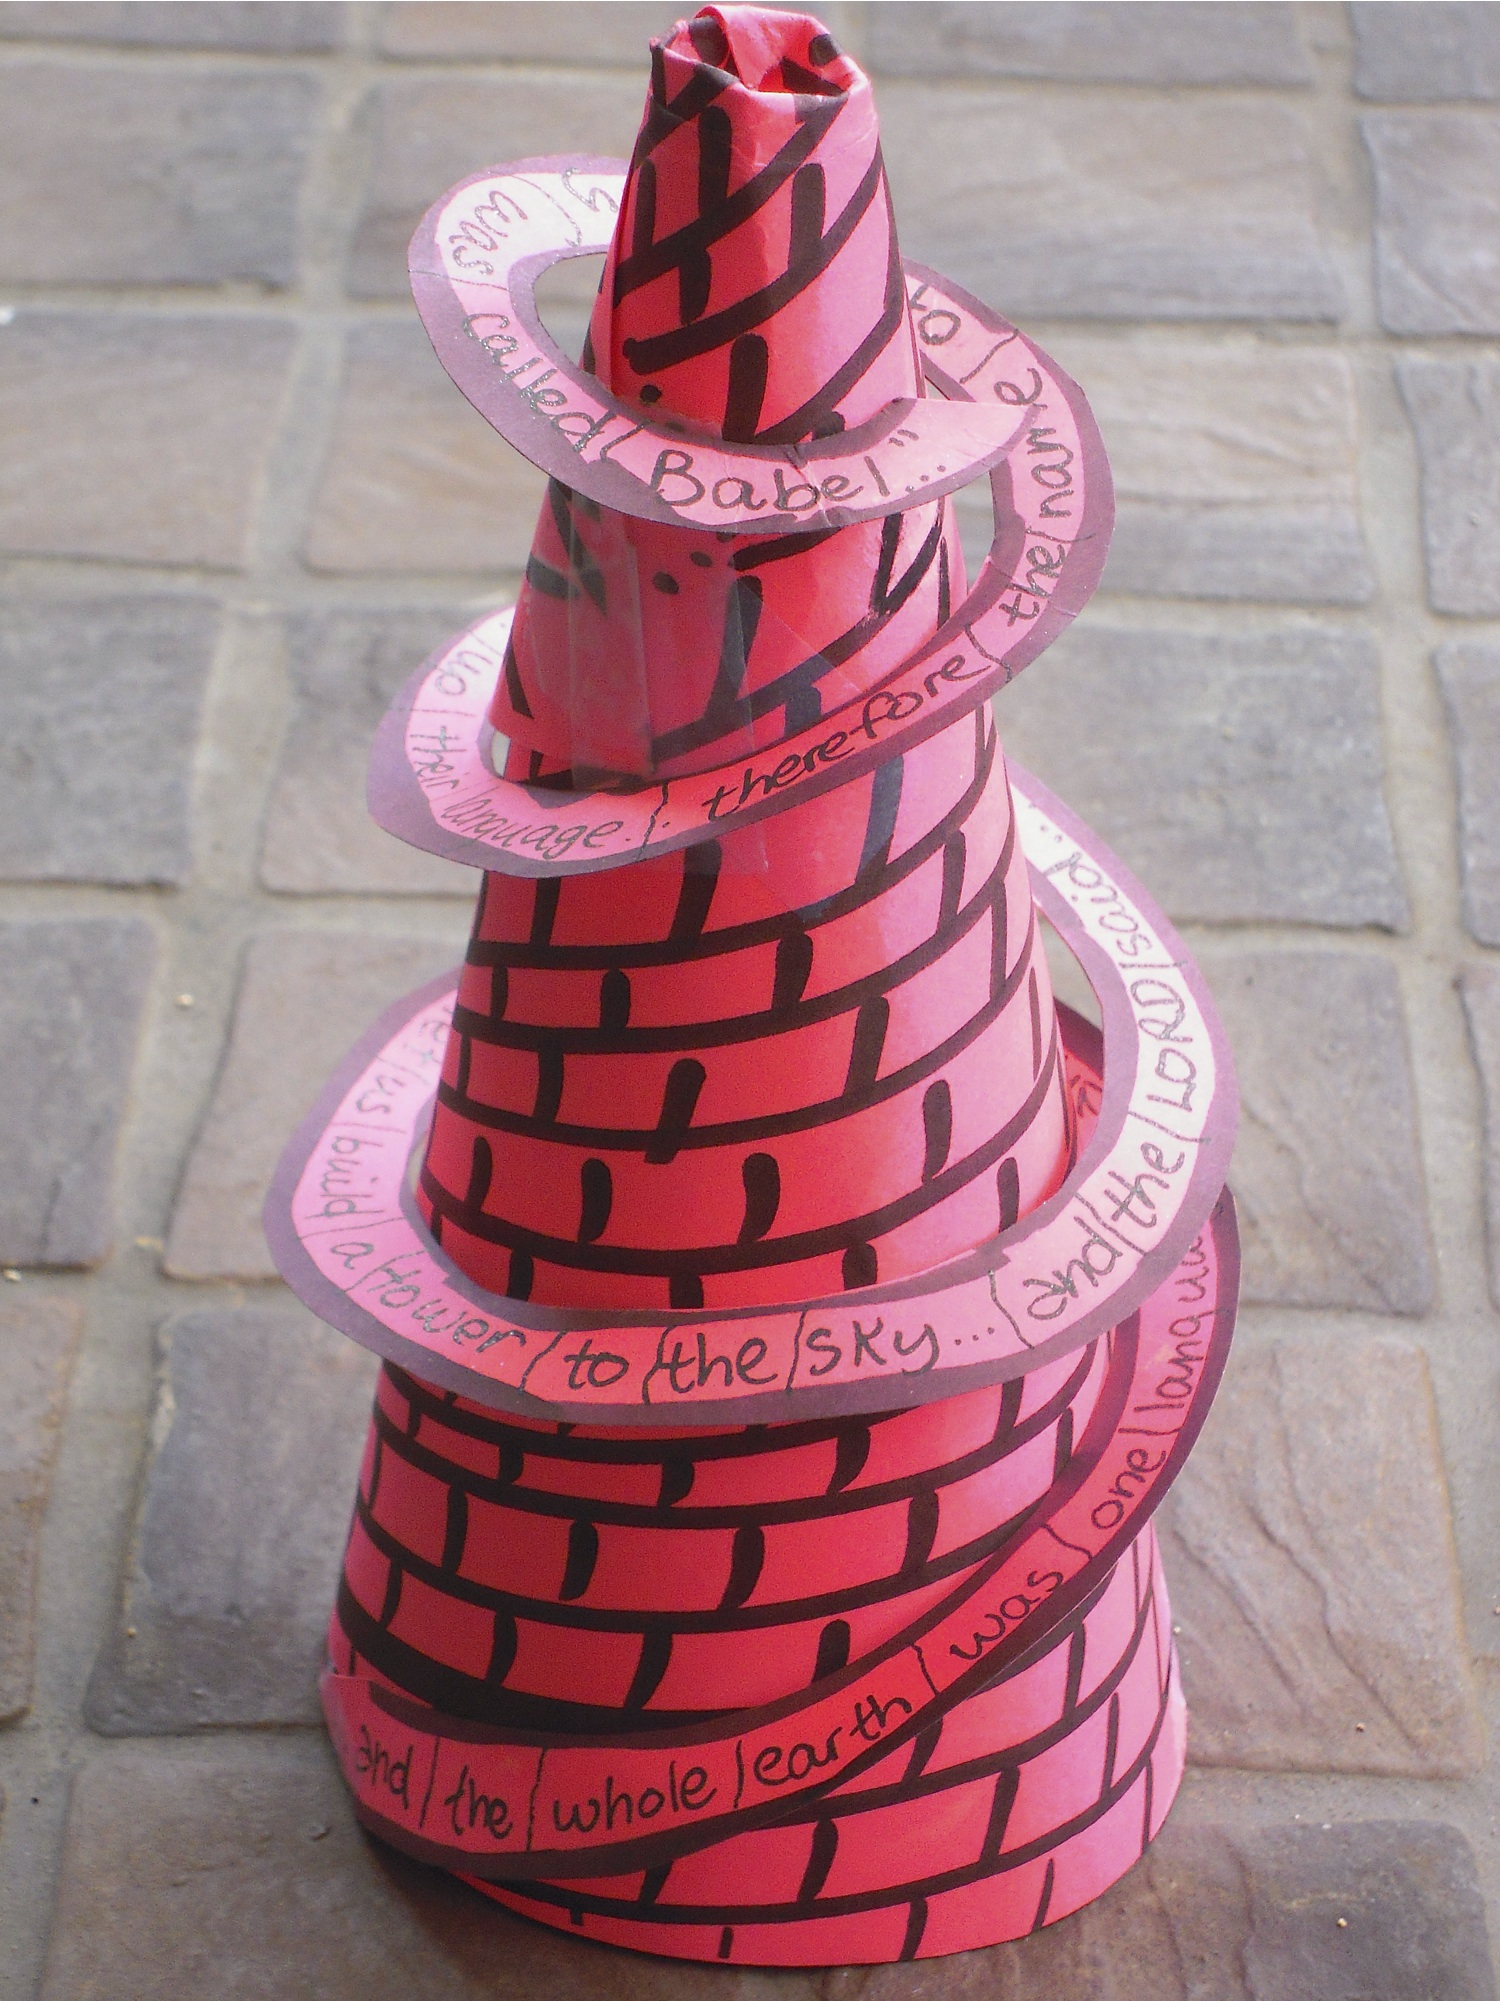 Tower Of Babel Craft Ideas http://auntiesbiblelessons.wordpress.com/2011/08/10/tower-of-babel/